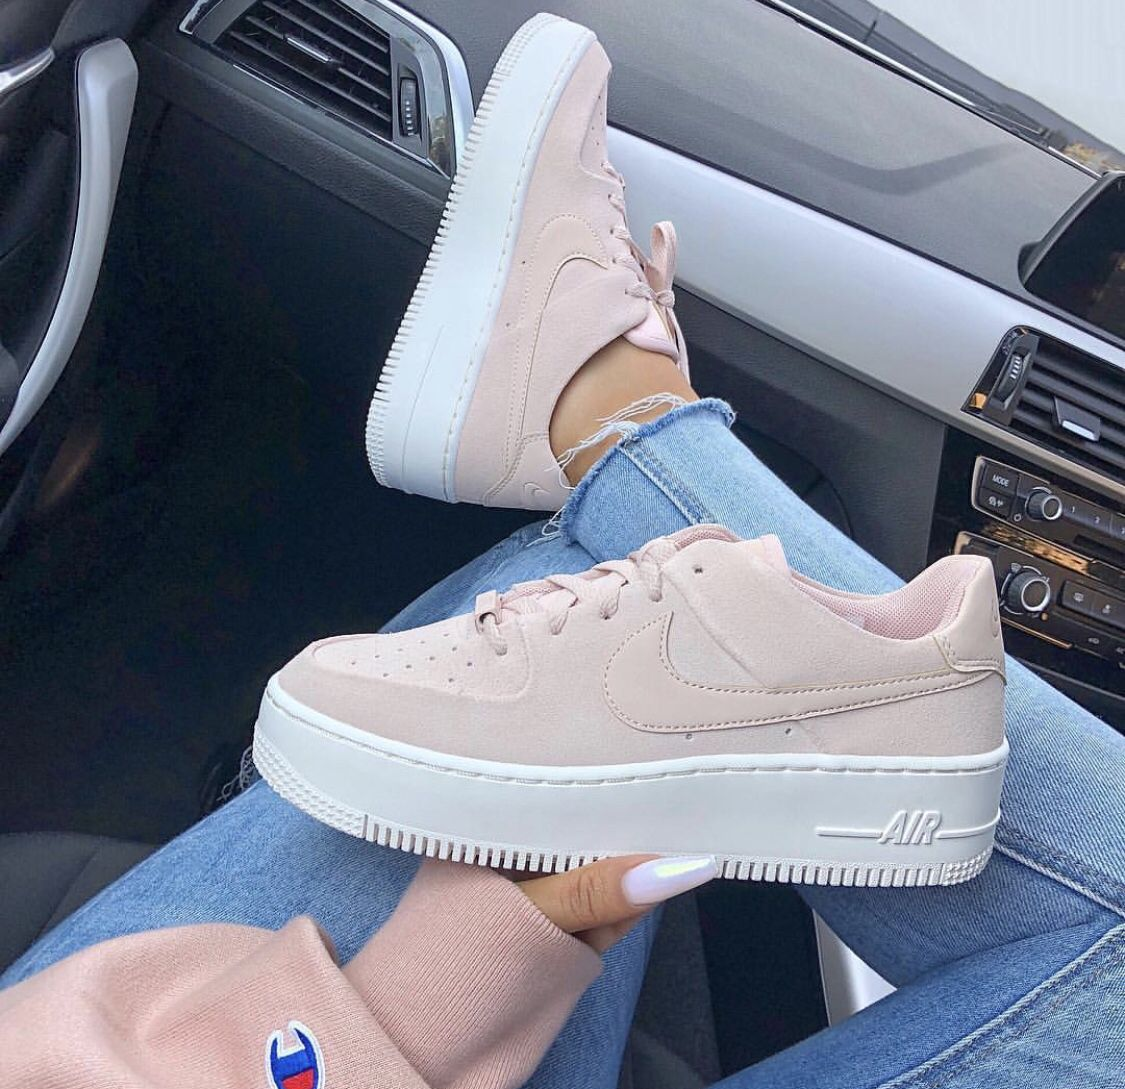 grosse chaussure nike pour femme